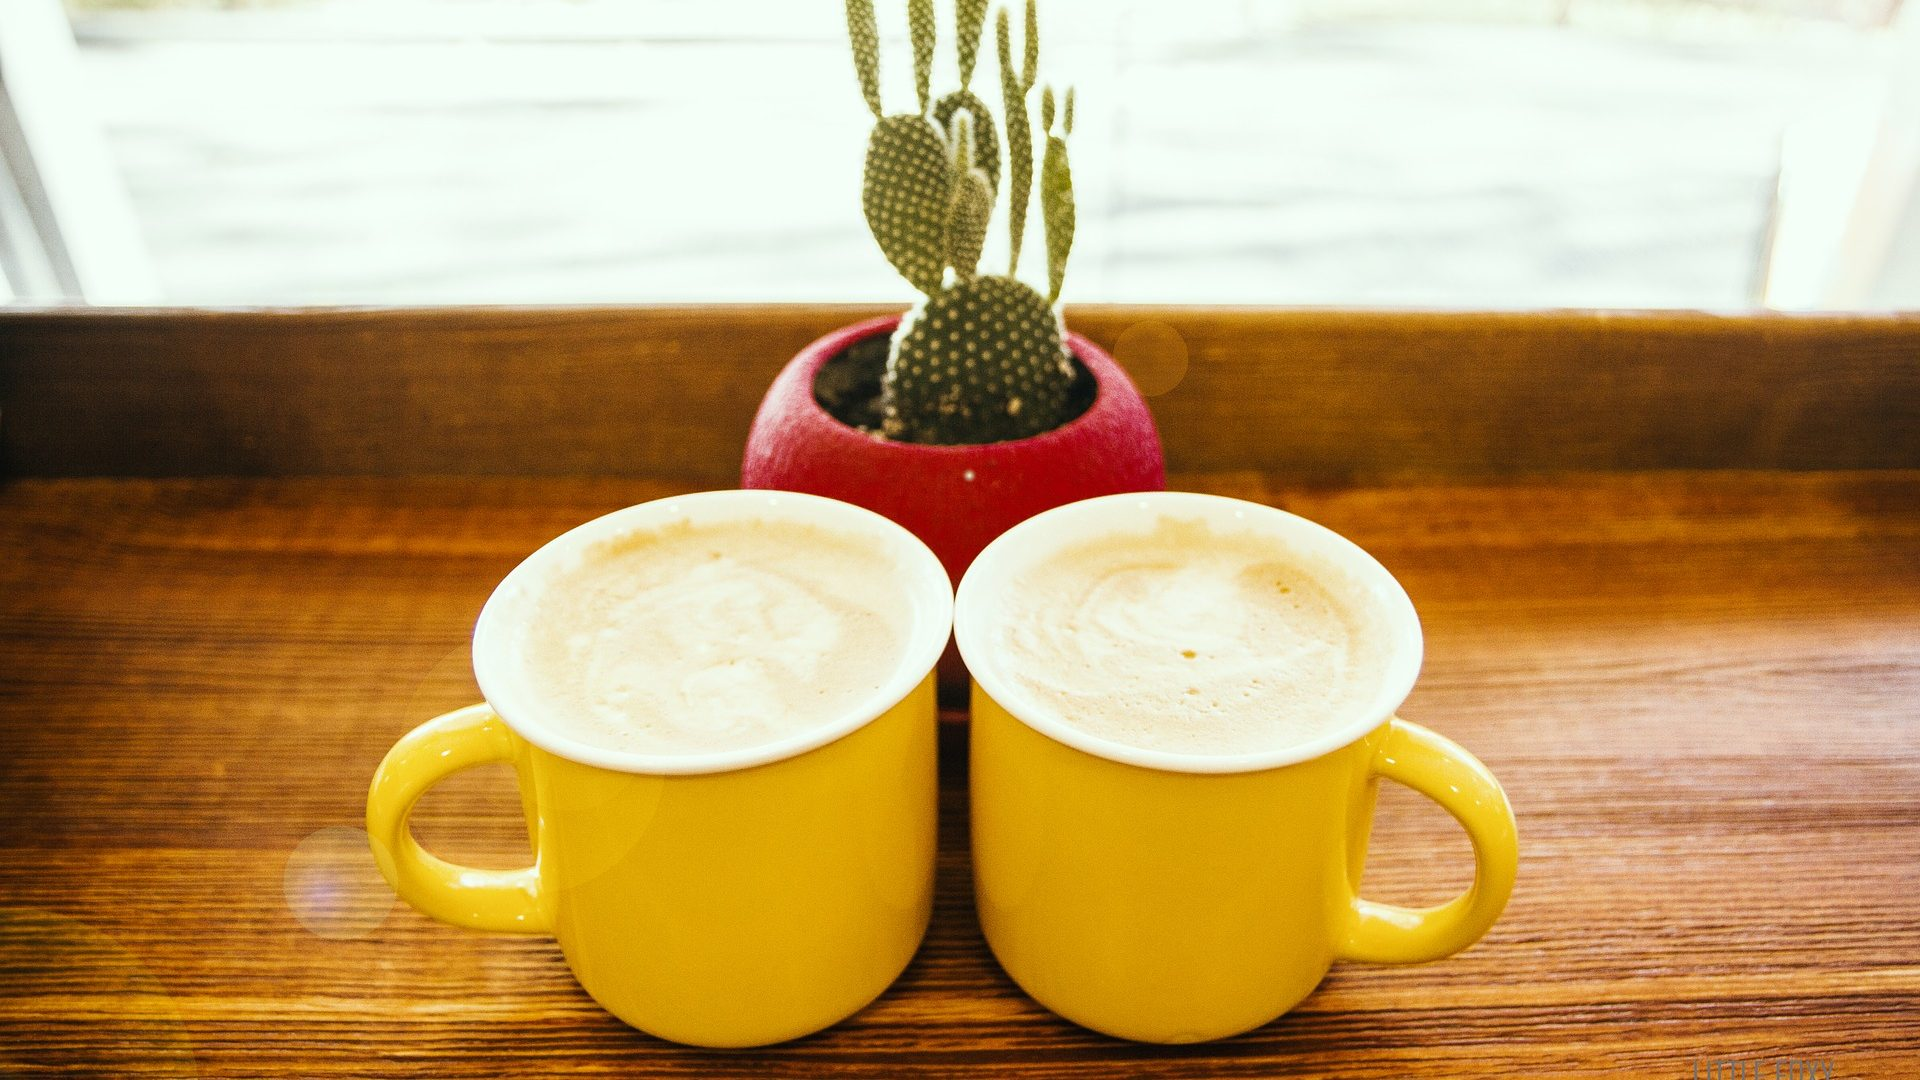 Image: Two coffee cups sitting in front of a cactus